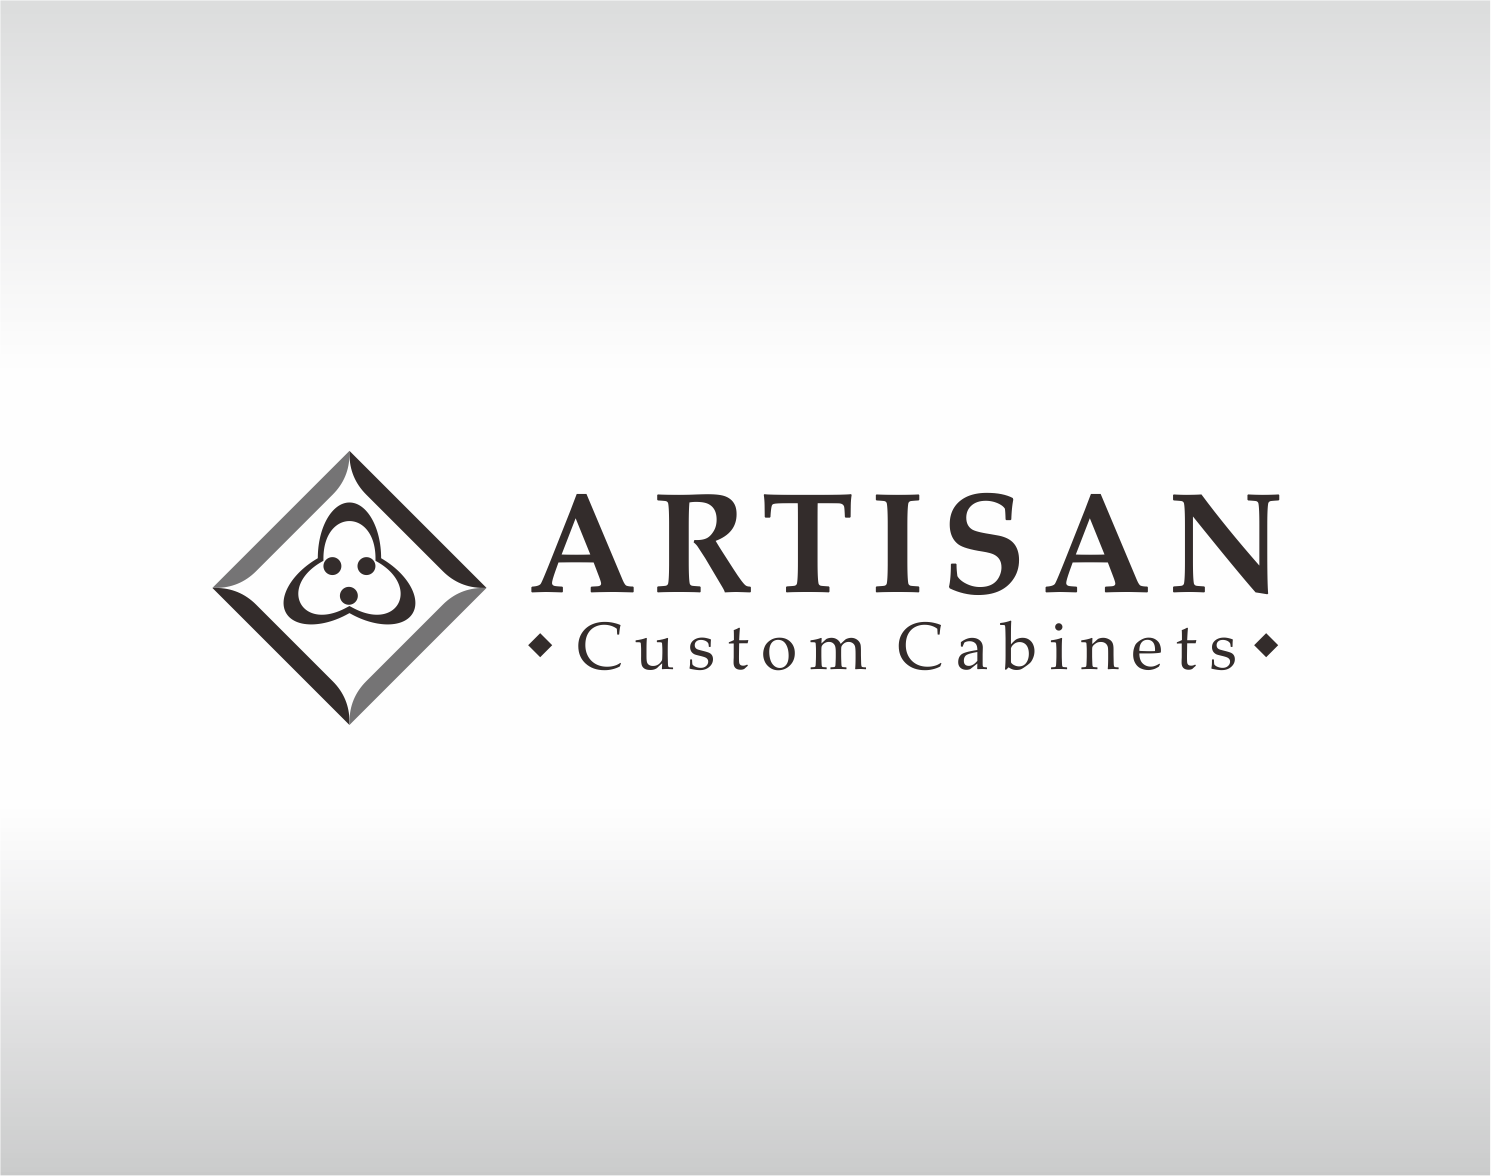 Logo Design by Armada Jamaluddin - Entry No. 226 in the Logo Design Contest Creative Logo Design for Artisan Custom Cabinets.